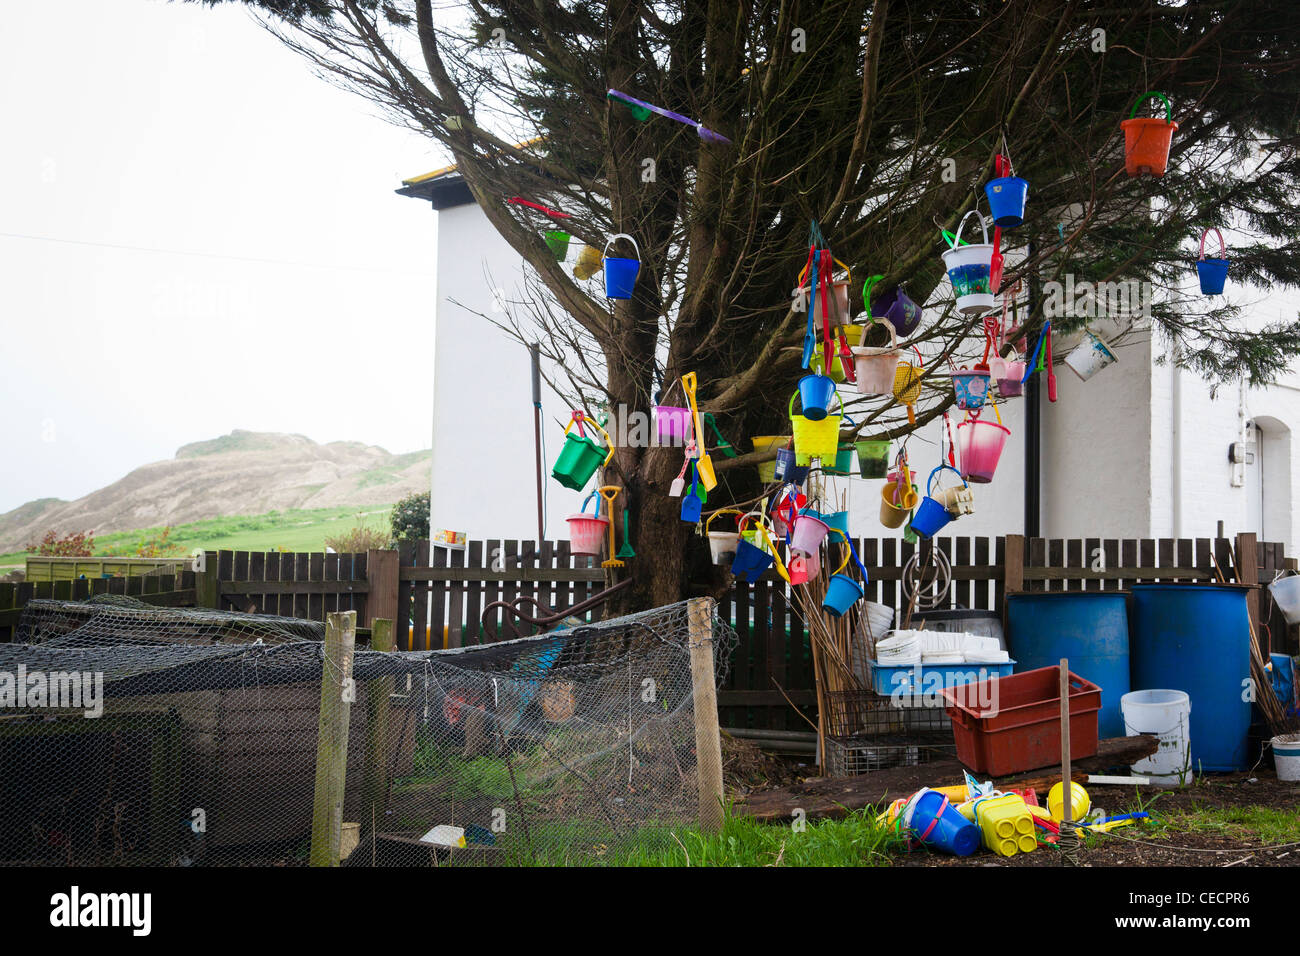 Collection of sundry buckets and spades adorn a tree next to Lulworth Cove, Dorset, England. Stock Photo